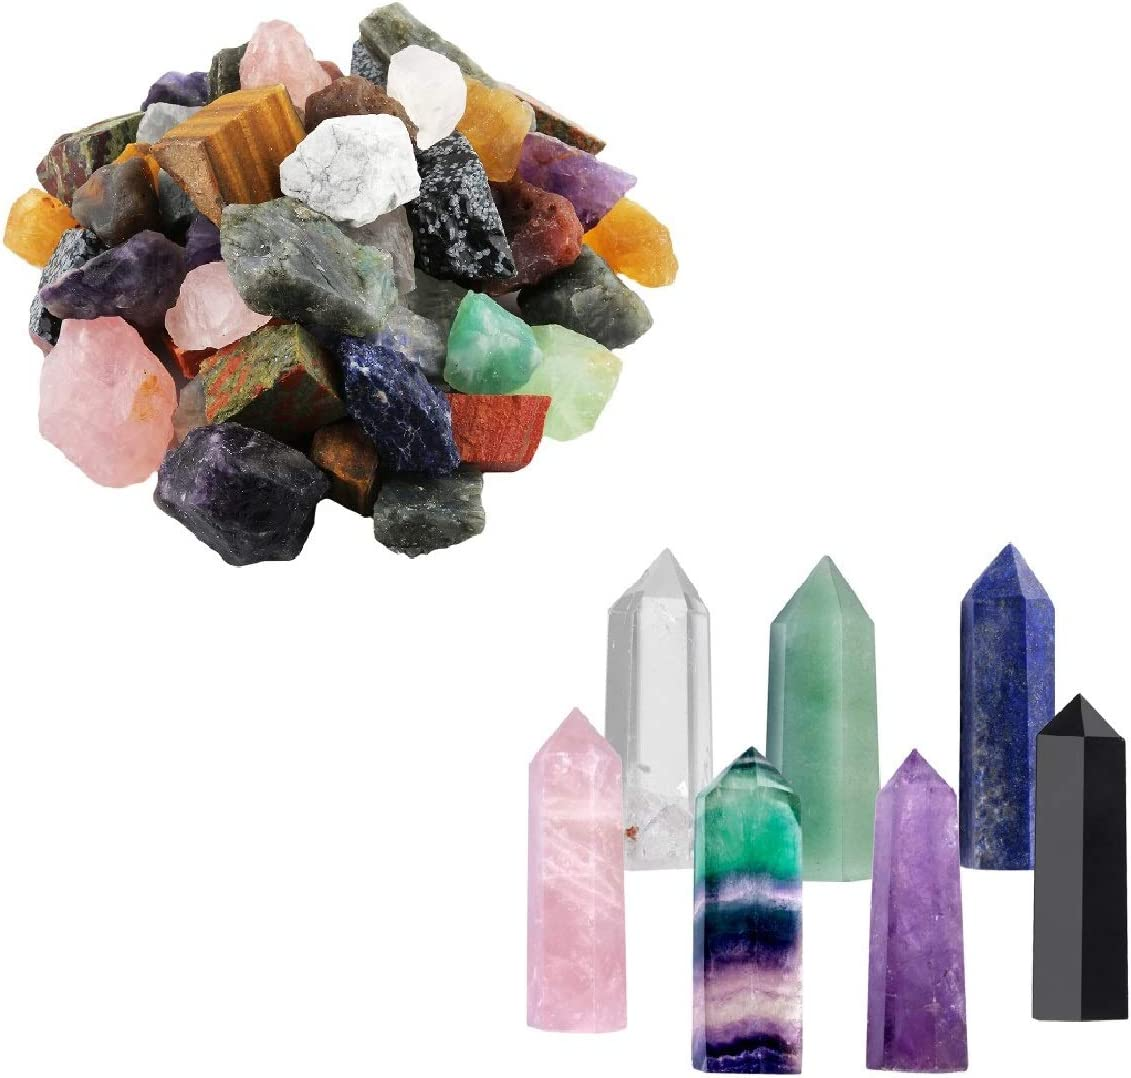 mookaitedecor Bundle - 2 Items: 1 lb Bulk Natural Raw Crystals Rough Stones & 7 PCS Healing Crystal Wands Reiki Stone for Meditation Therapy Decor